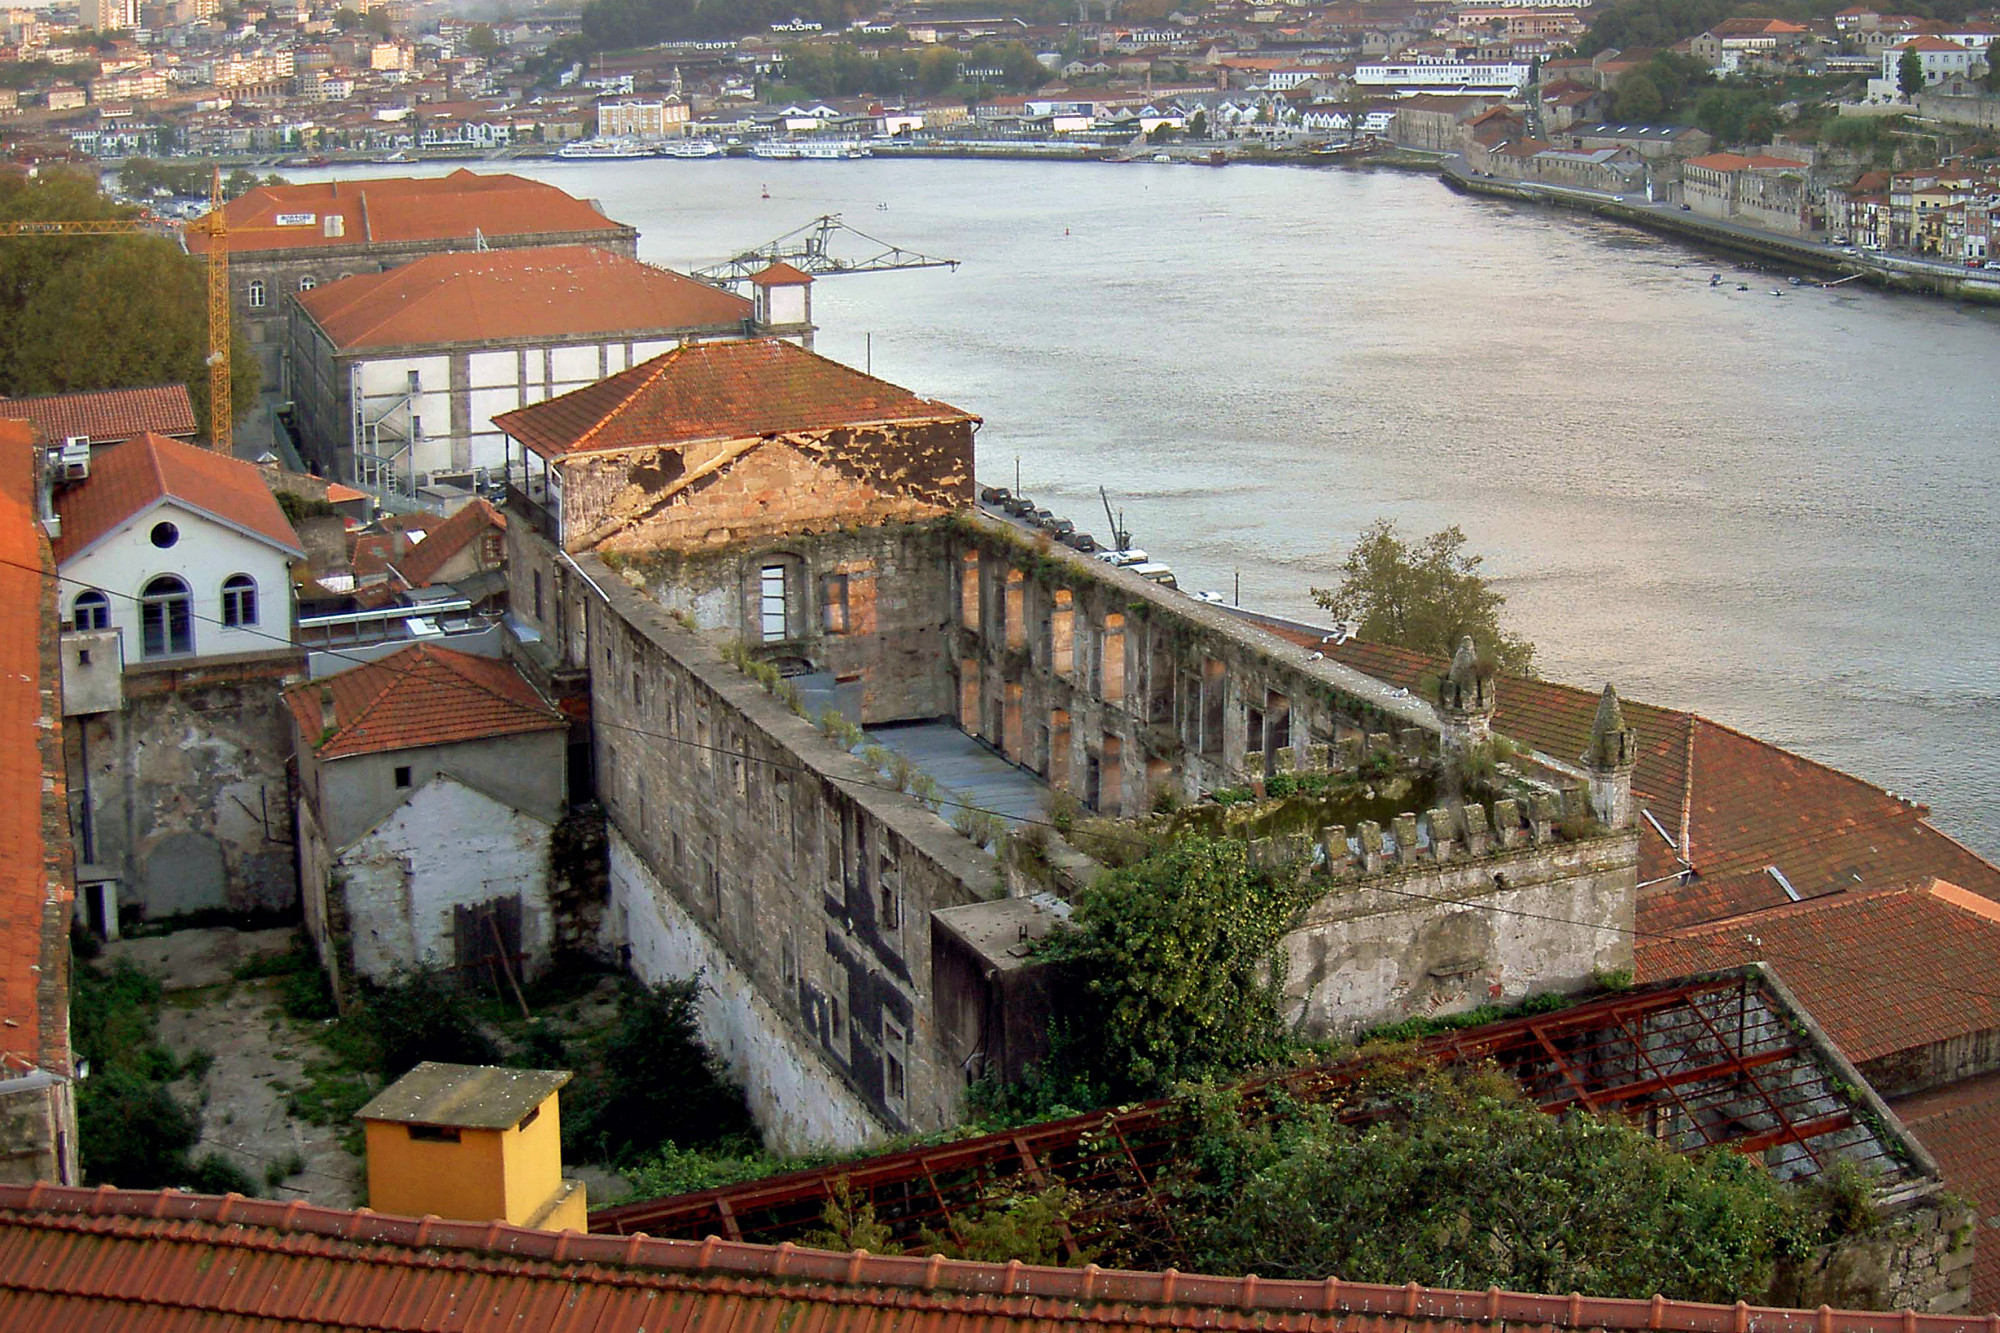 Convento Madre Deus de Monchique in Porto transformed into a hotel